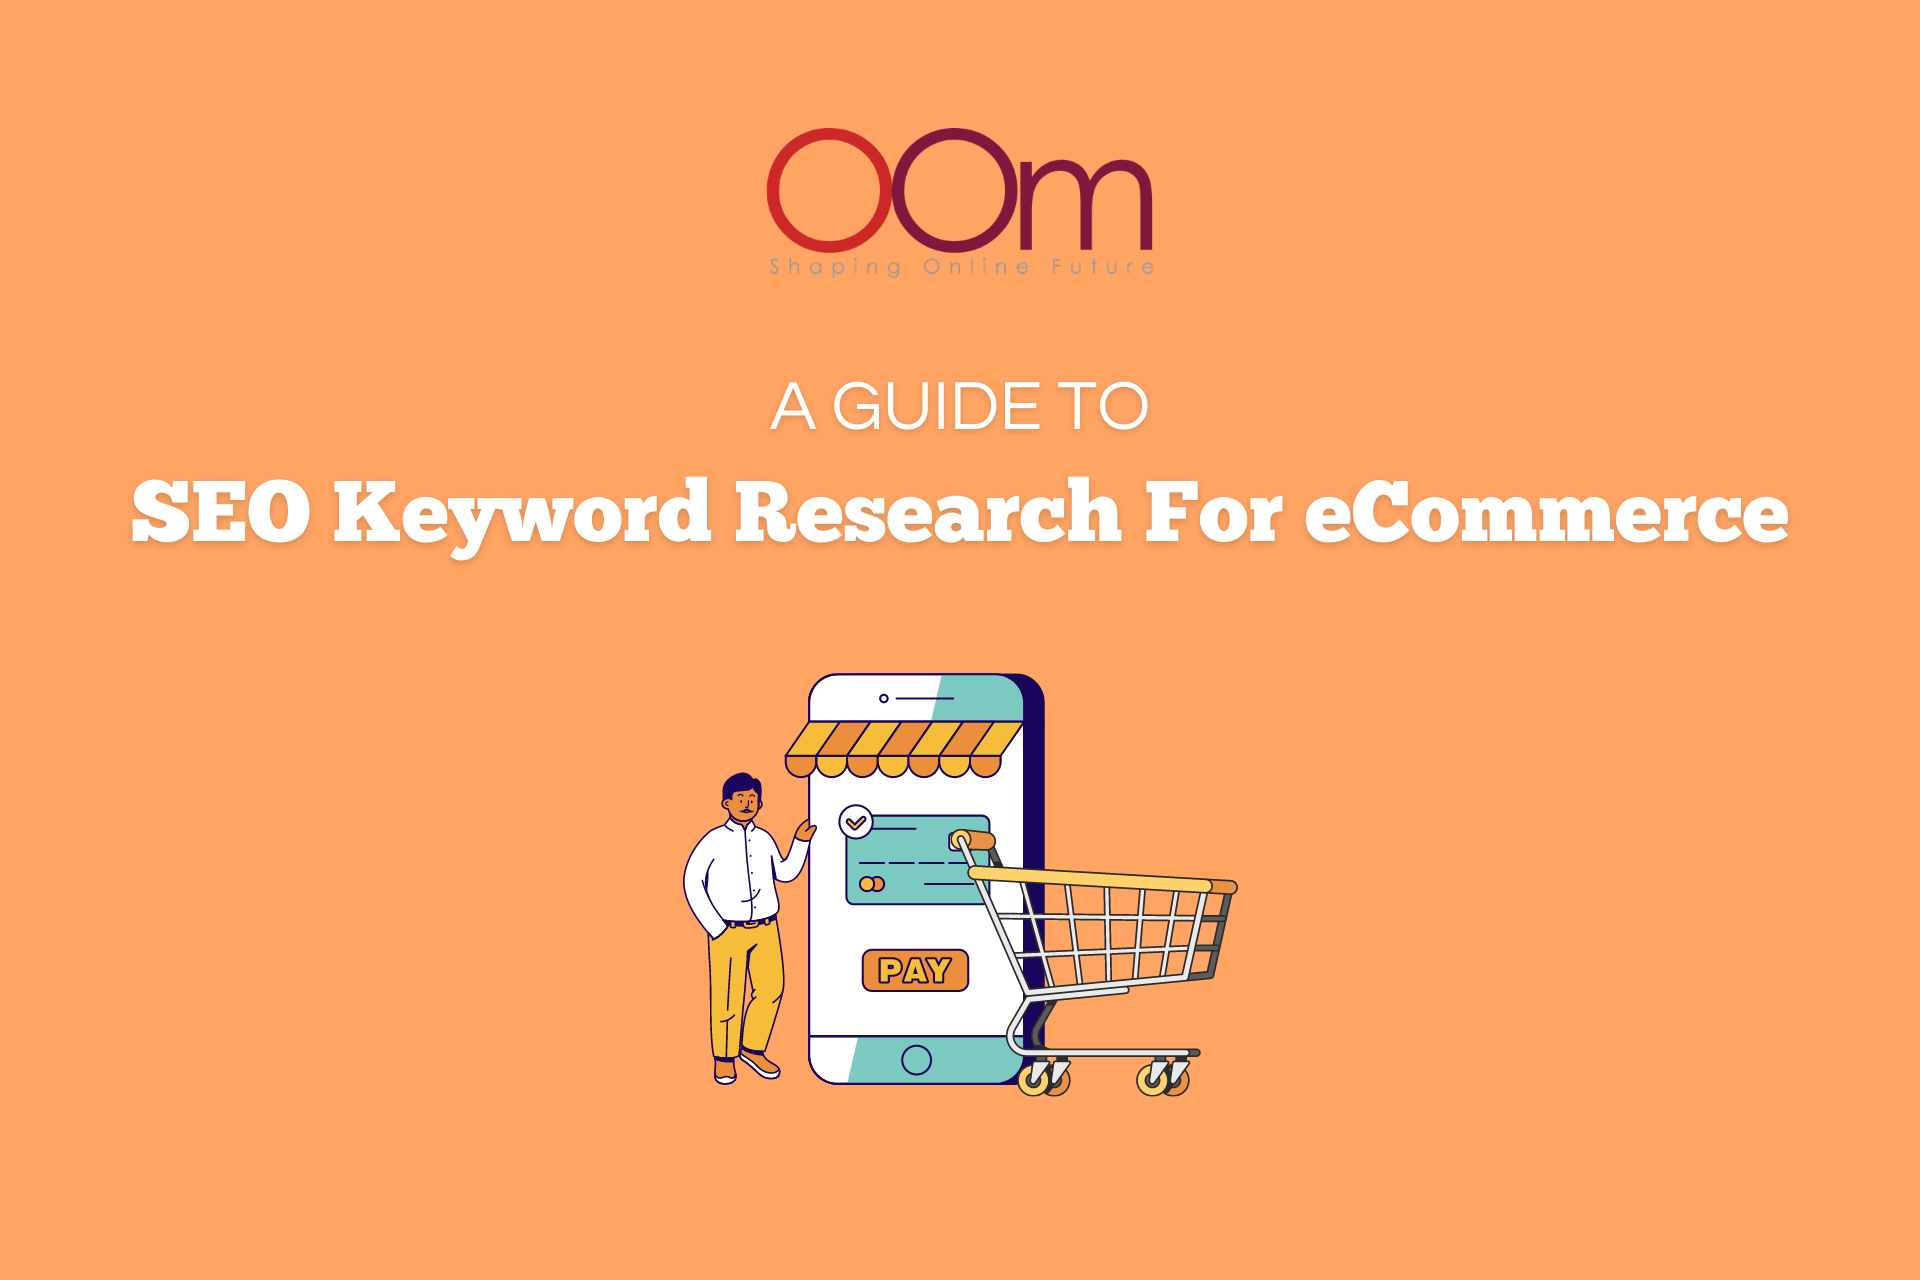 A Guide To SEO Keyword Research For eCommerce